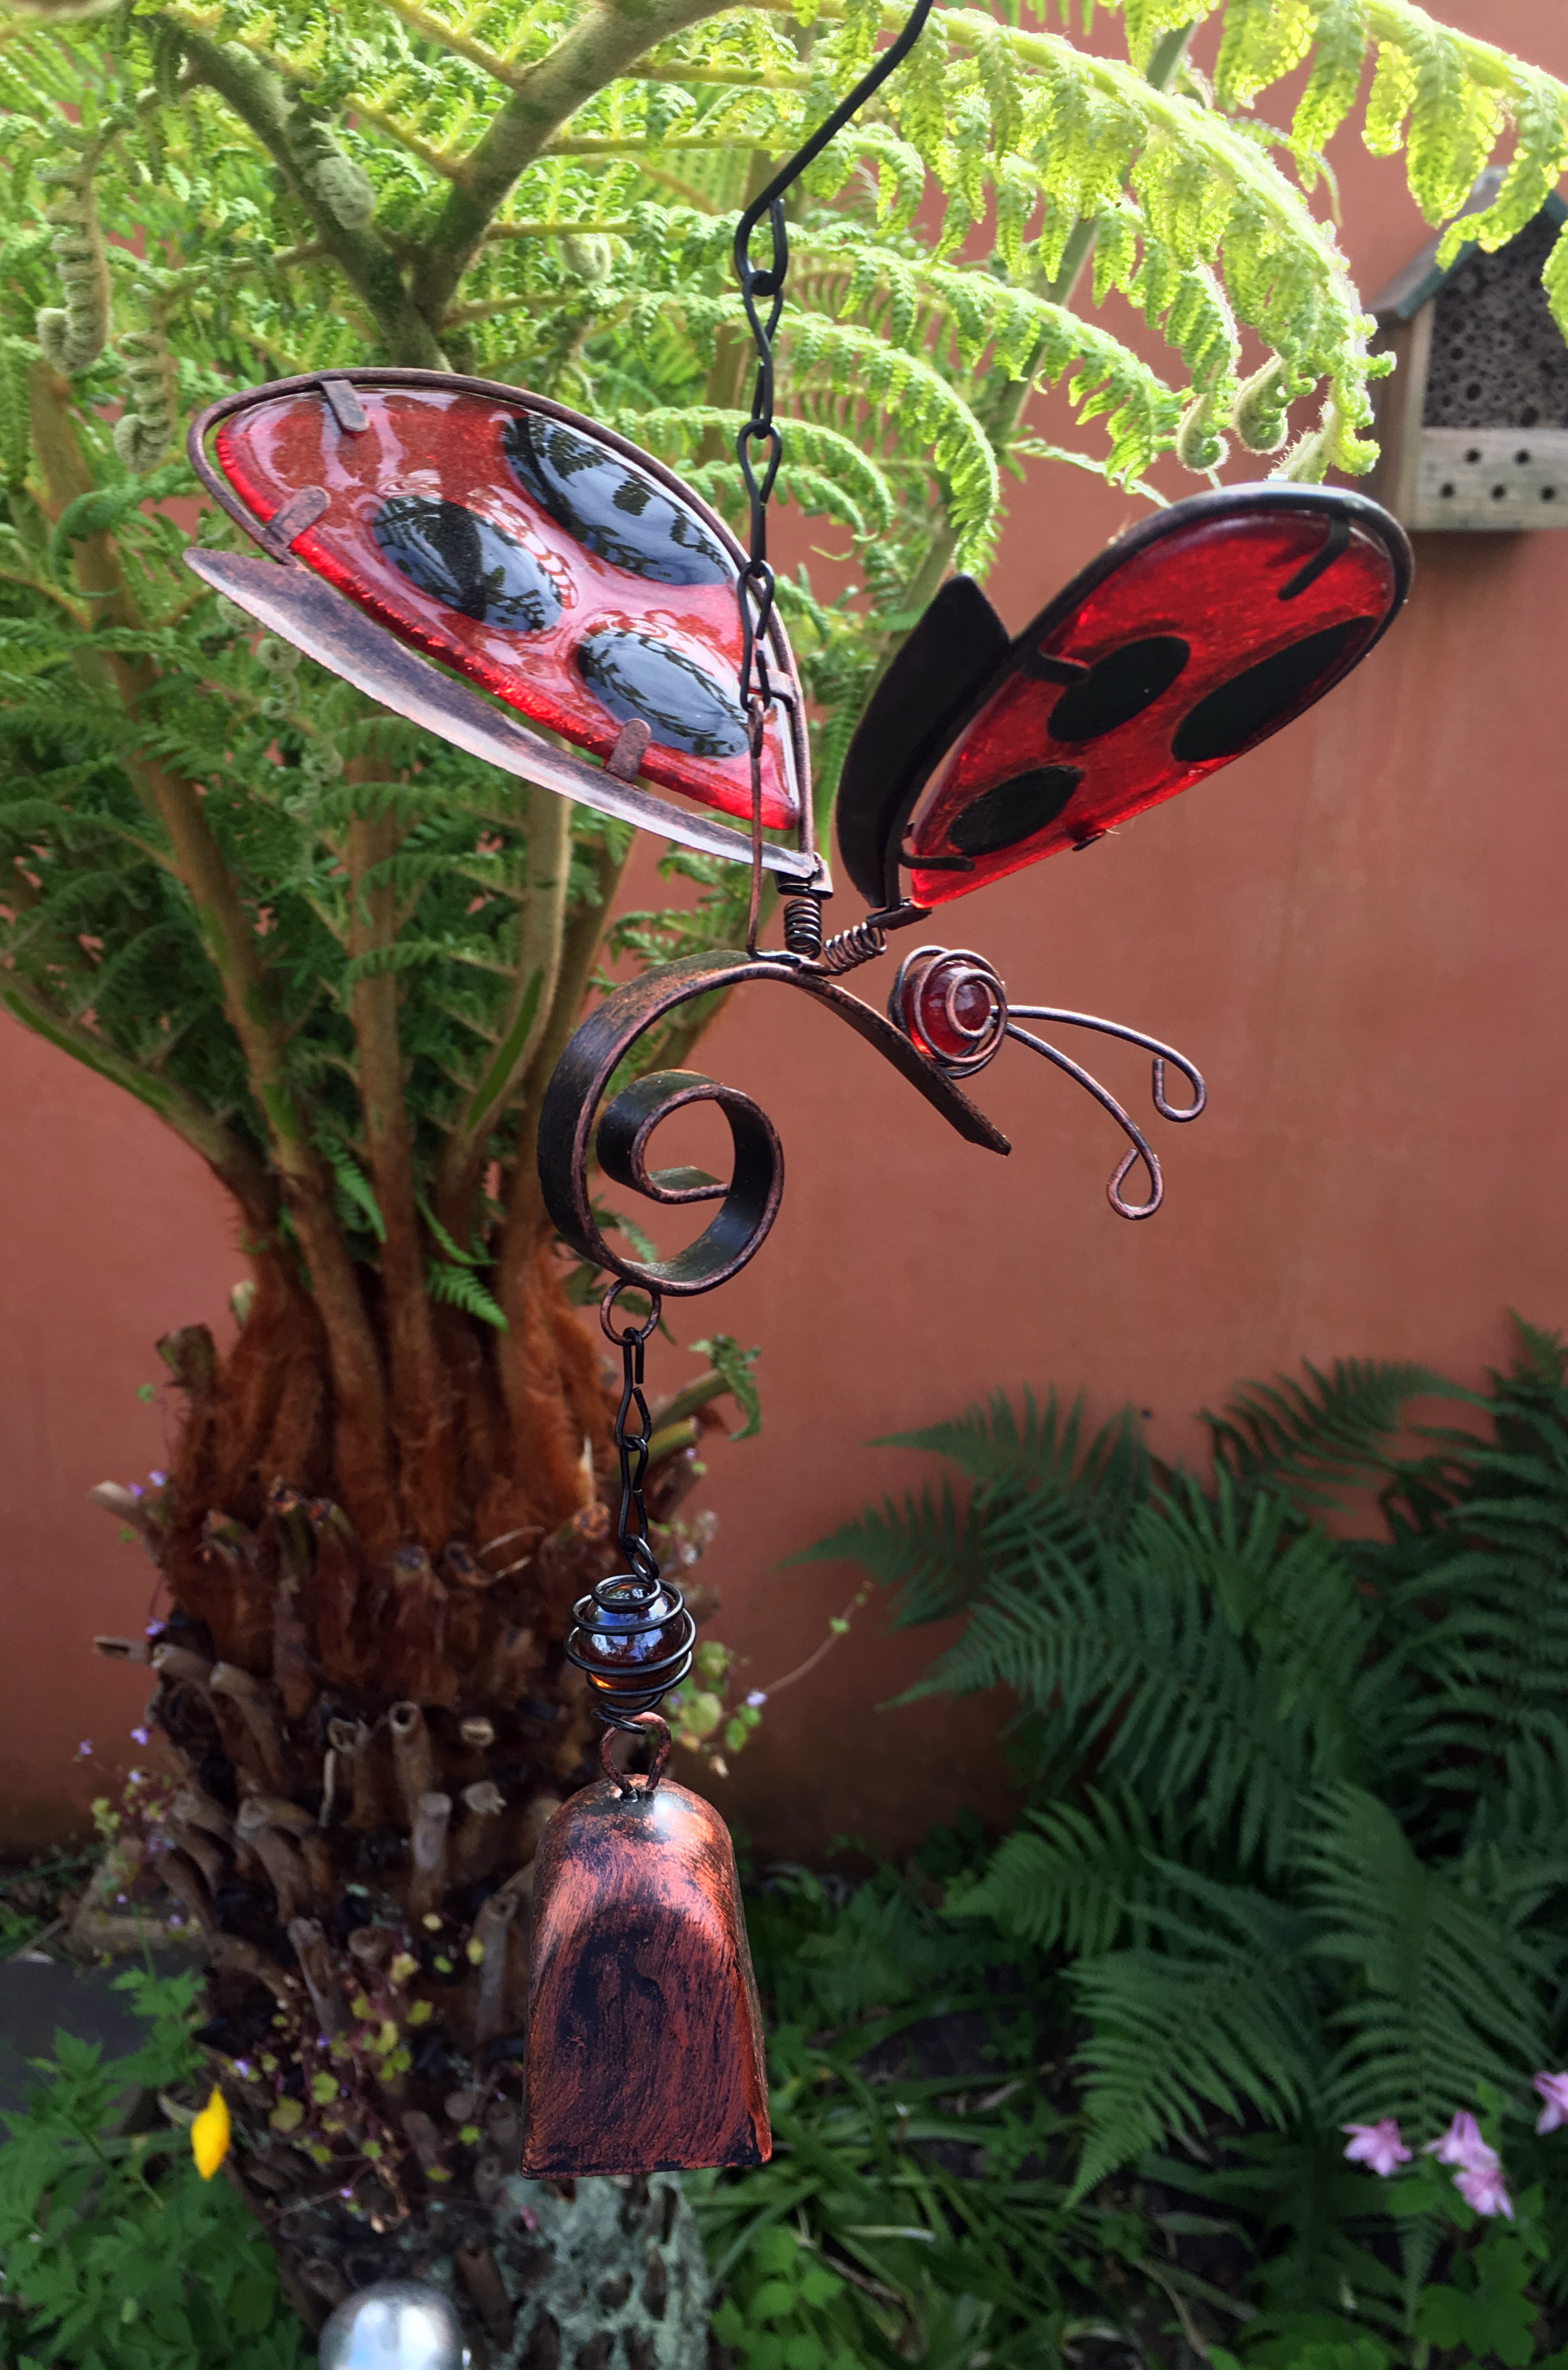 Large-Metal-amp-Glass-Hanging-Sun-Catcher-Wind-Chime-Home-Garden-Decorations thumbnail 8